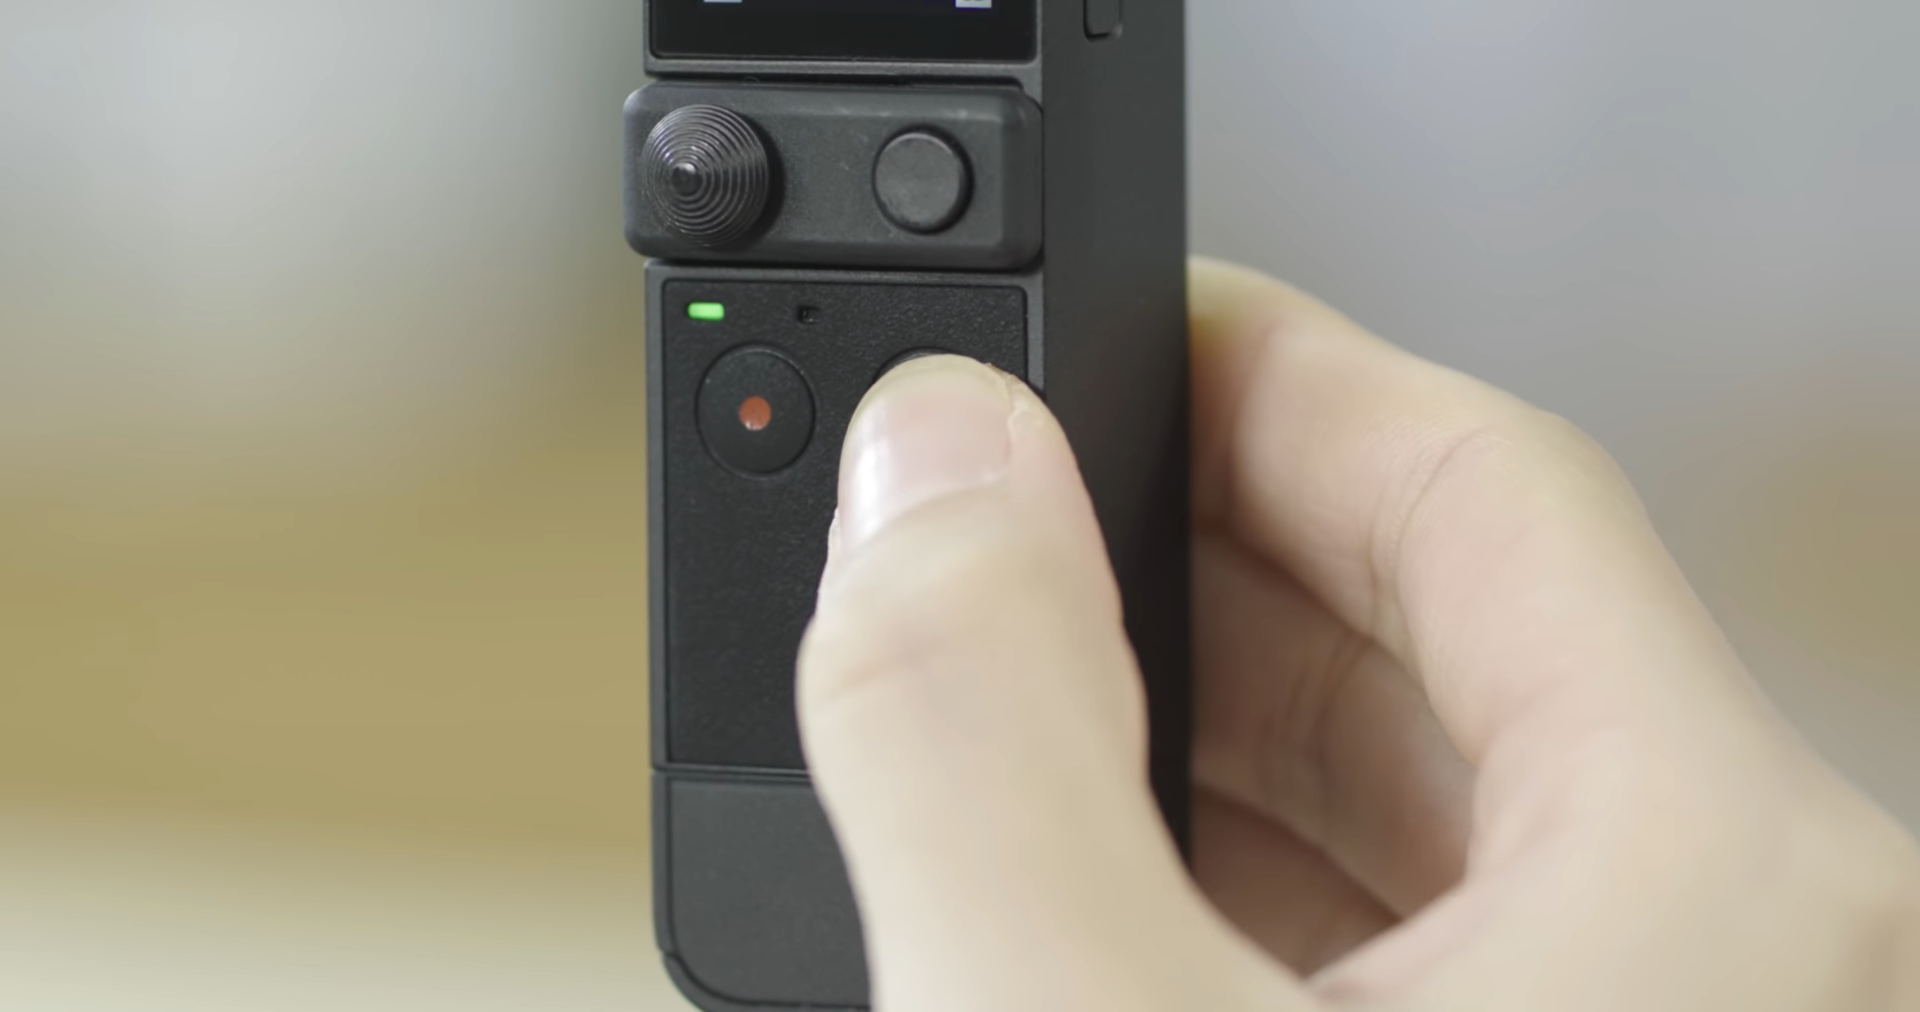 """DJI POCKET 2 Powerful handheld stabilised mini camera. What is the DJI Pocket 2? The DJI Pocket 2 is a tiny, but powerful stabilised mini 4K camera. The standard edition (pictured) features the gimbal, as well as Mini Control Stick and Tripod Mount (1/4""""). A DJI Pocket 2 Creator Combo is also available, featuring more accessories, including wide-angle lens, wireless microphone + windscreen, and Do-It-All Handle. Key features of the handheld DJI Pocket 2 include: Tiny Frame, Easily Transportable: The Pocket 2 weighs just 117g and offers up to 140 minutes of battery life. Small Camera, Big Results: An upgraded 1/1.7-inch sensor captures images with improved quality over the first generation Osmo Pocket, while the sweeping 20mm f/1.8 lens provides wide, cinematic video and images. Improved Audio System: New DJI Matrix Stereo consists of four microphones for enhanced audio effects. New Intelligent Features: Range of new features takes content creation to the next level. Expandable: Push creativity further with a suite of accessories for DJI Pocket 2."""